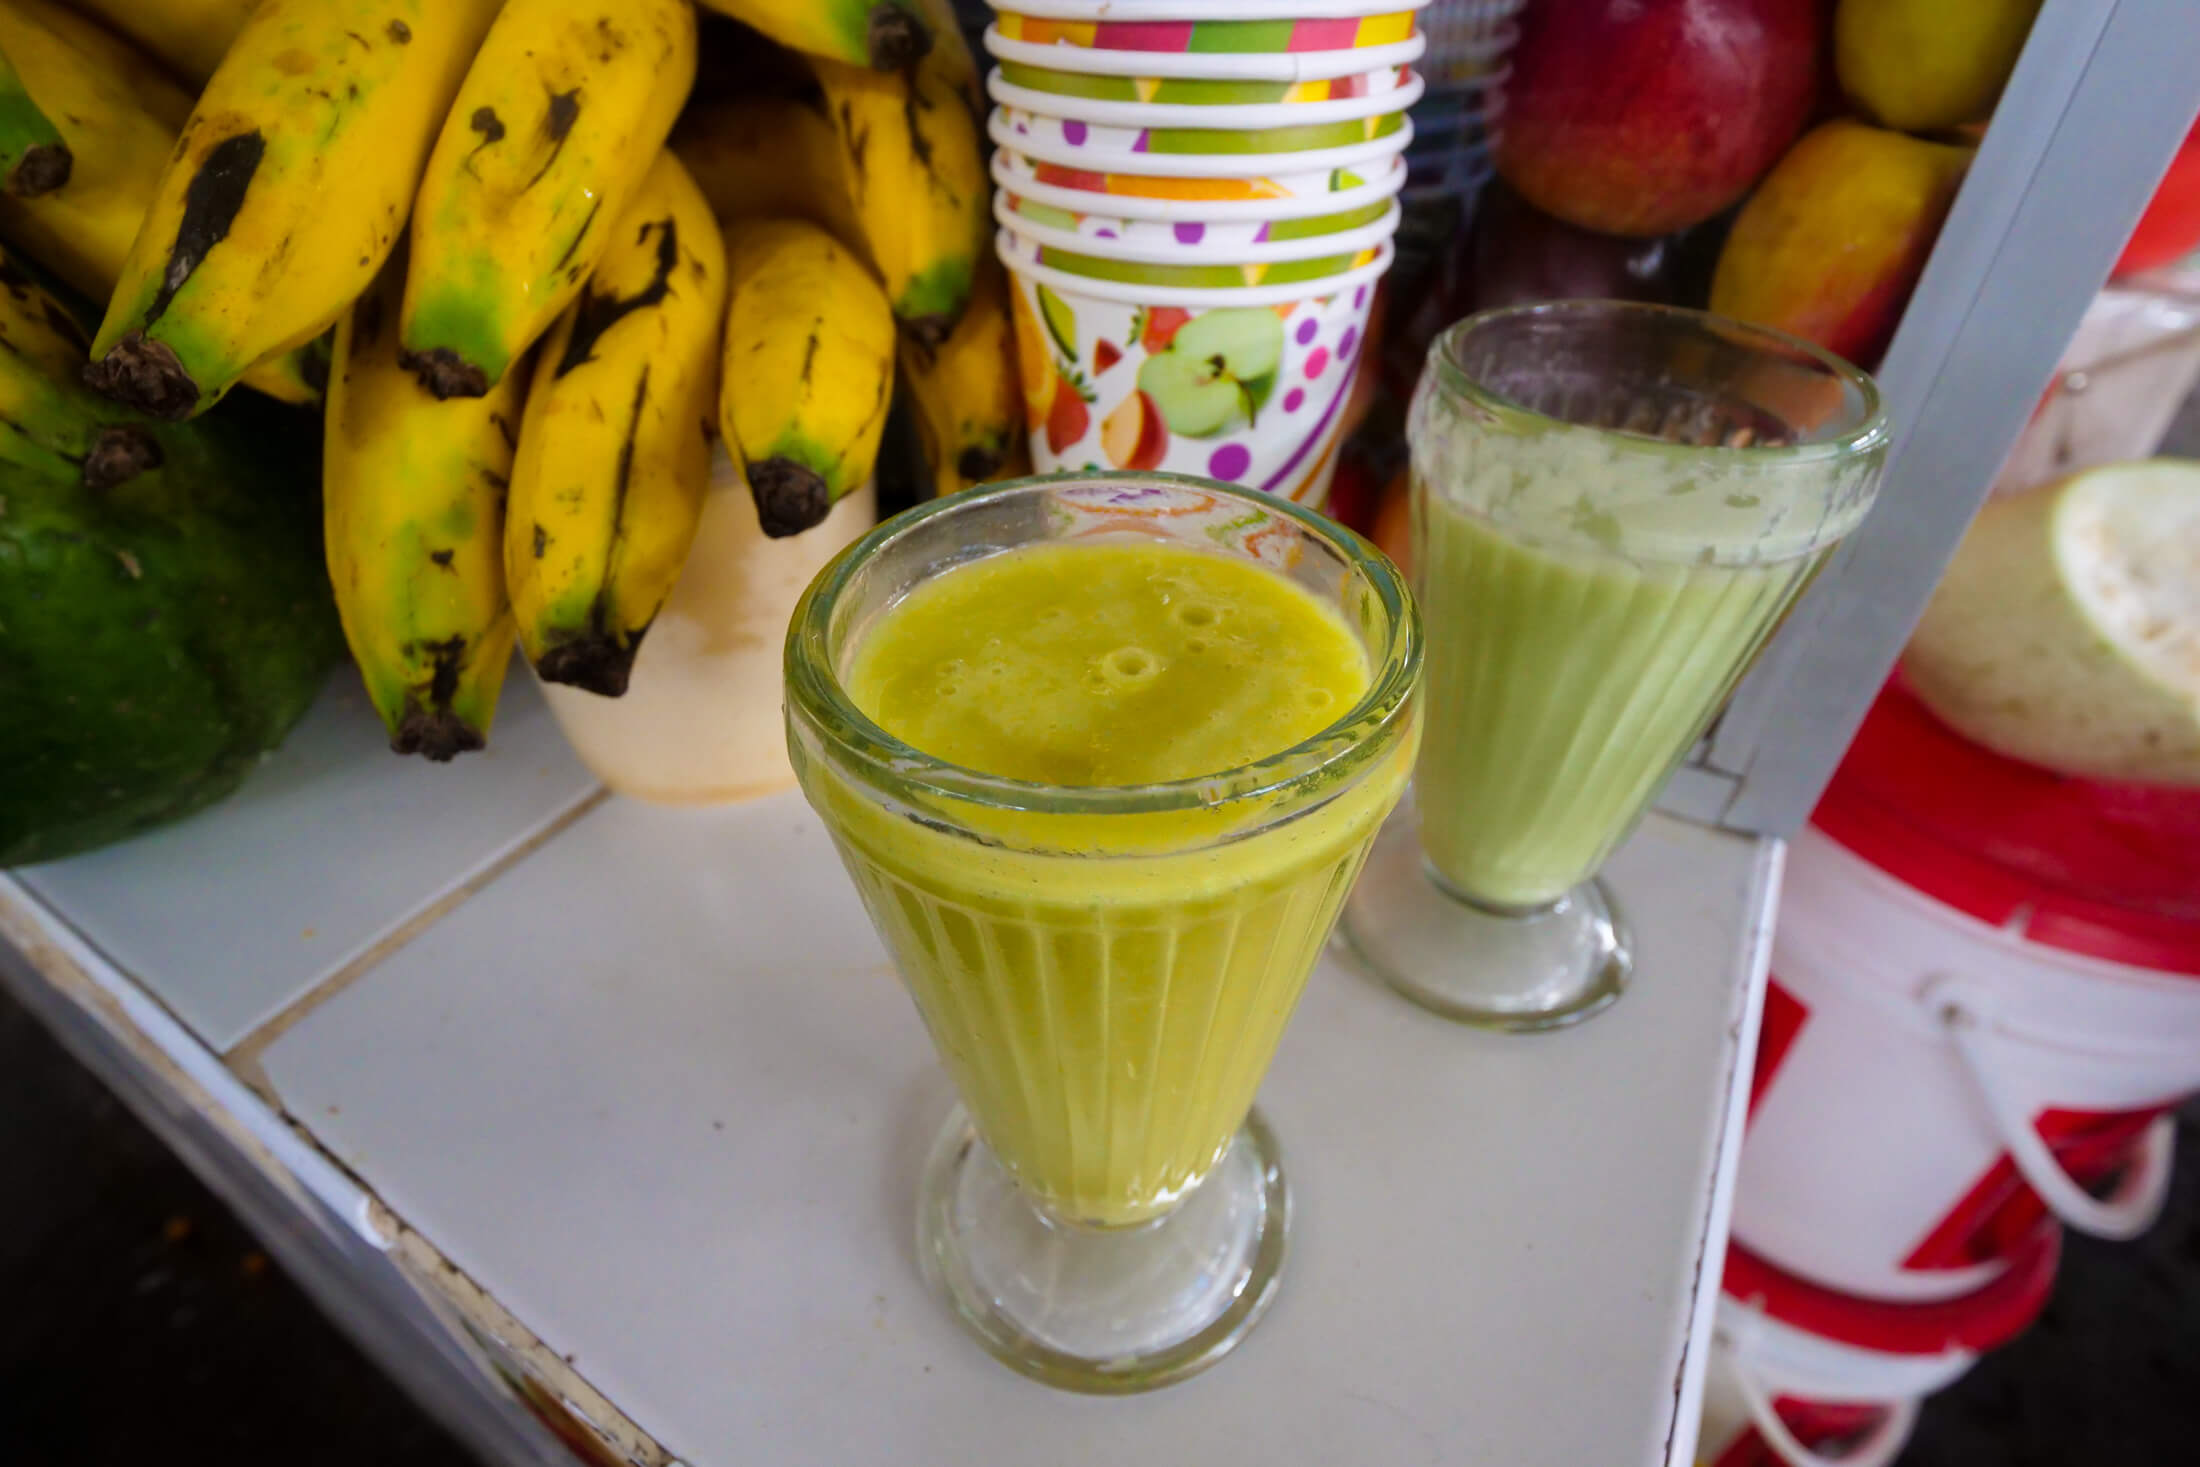 Avocado and Mango shake at the San Pedro Market in Cusco